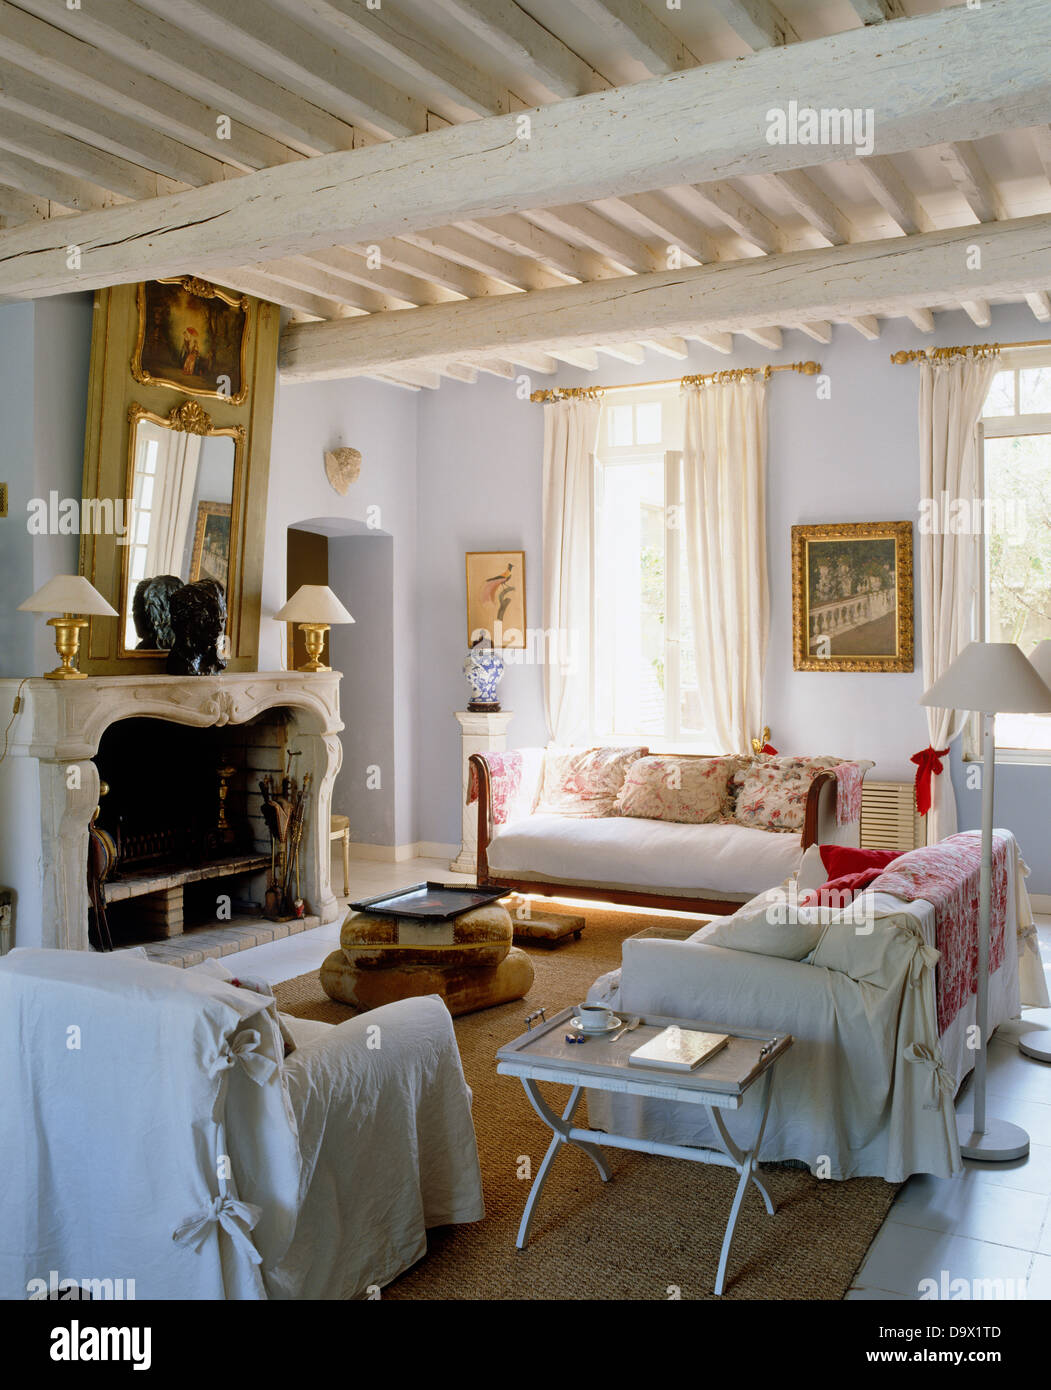 White Loose Covers On Armchair And Sofas In French Country Living Room With  Painted Rustic Beams And Mirror Above Fireplace